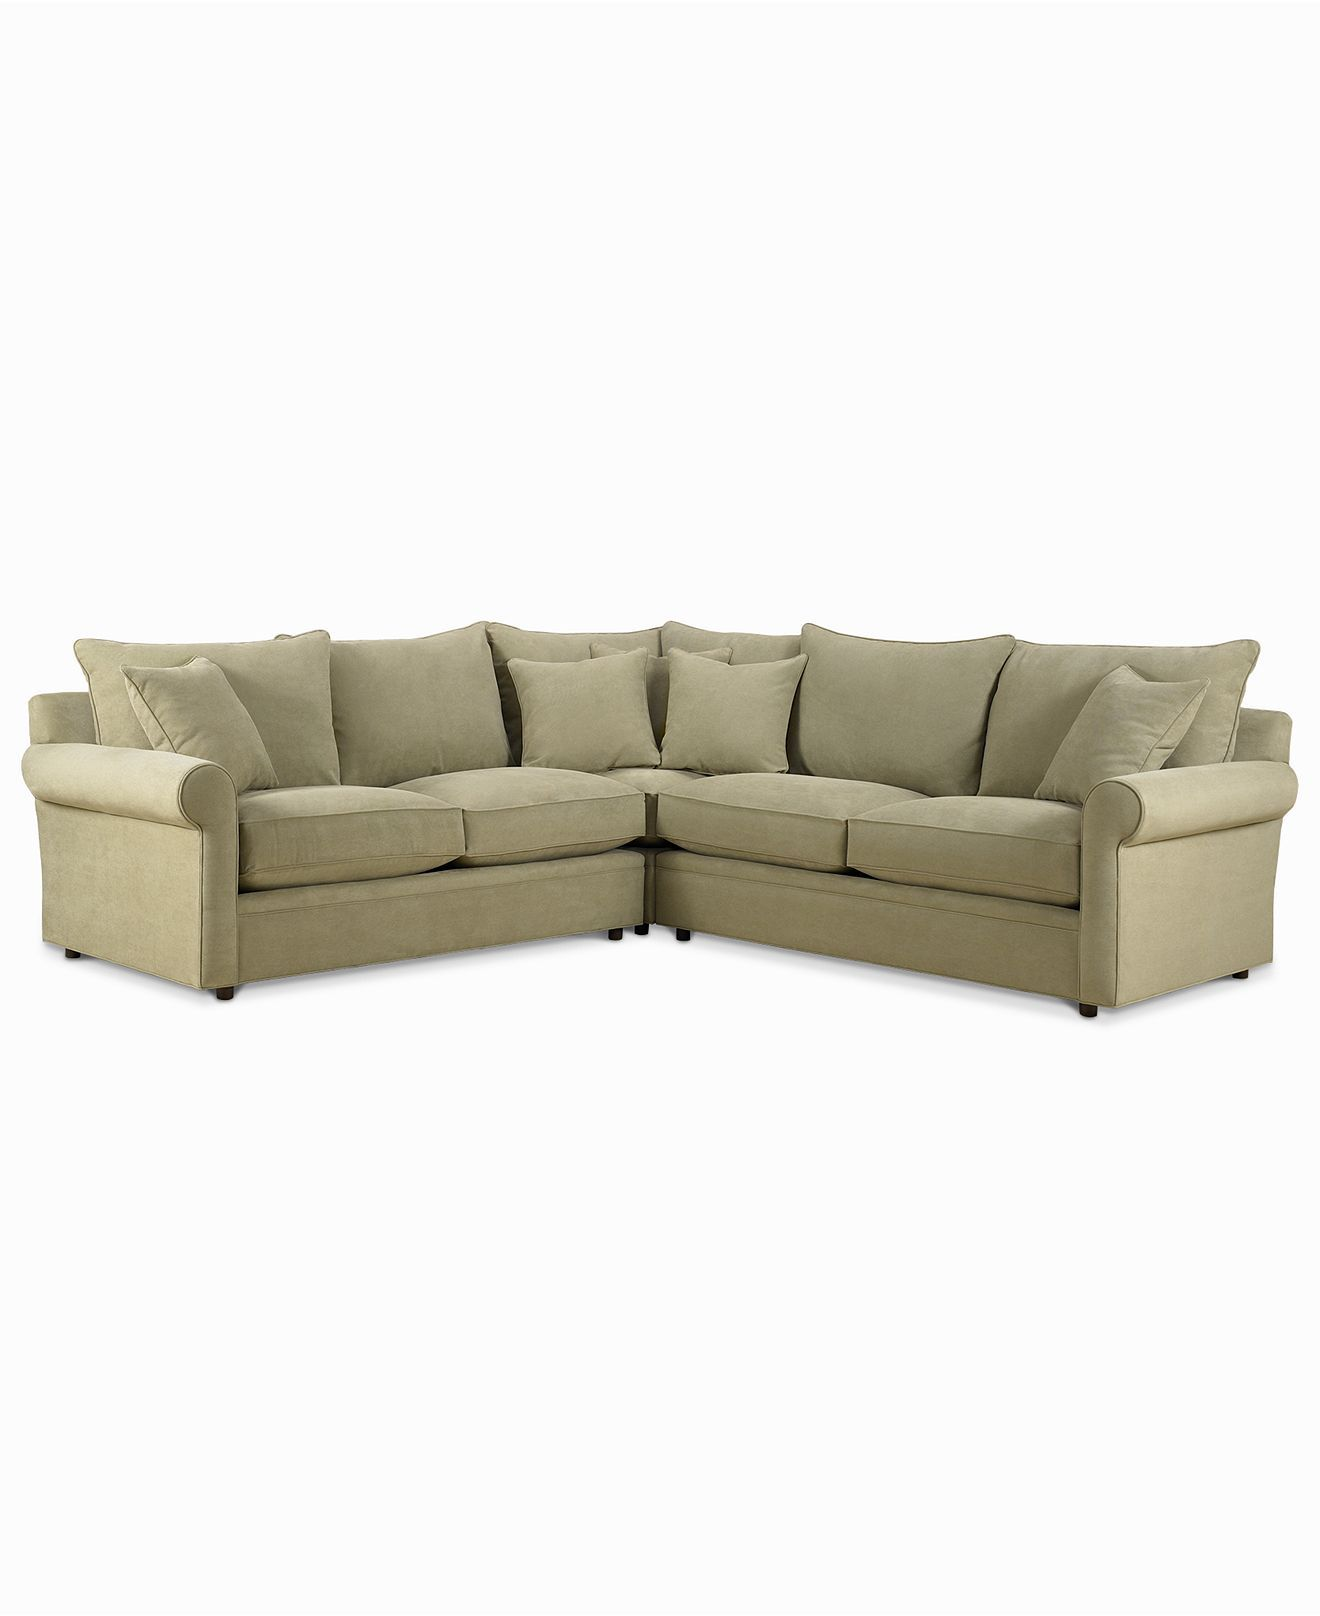 Best Doss Fabric Microfiber 3 Piece Sectional Sofa Apartment 640 x 480